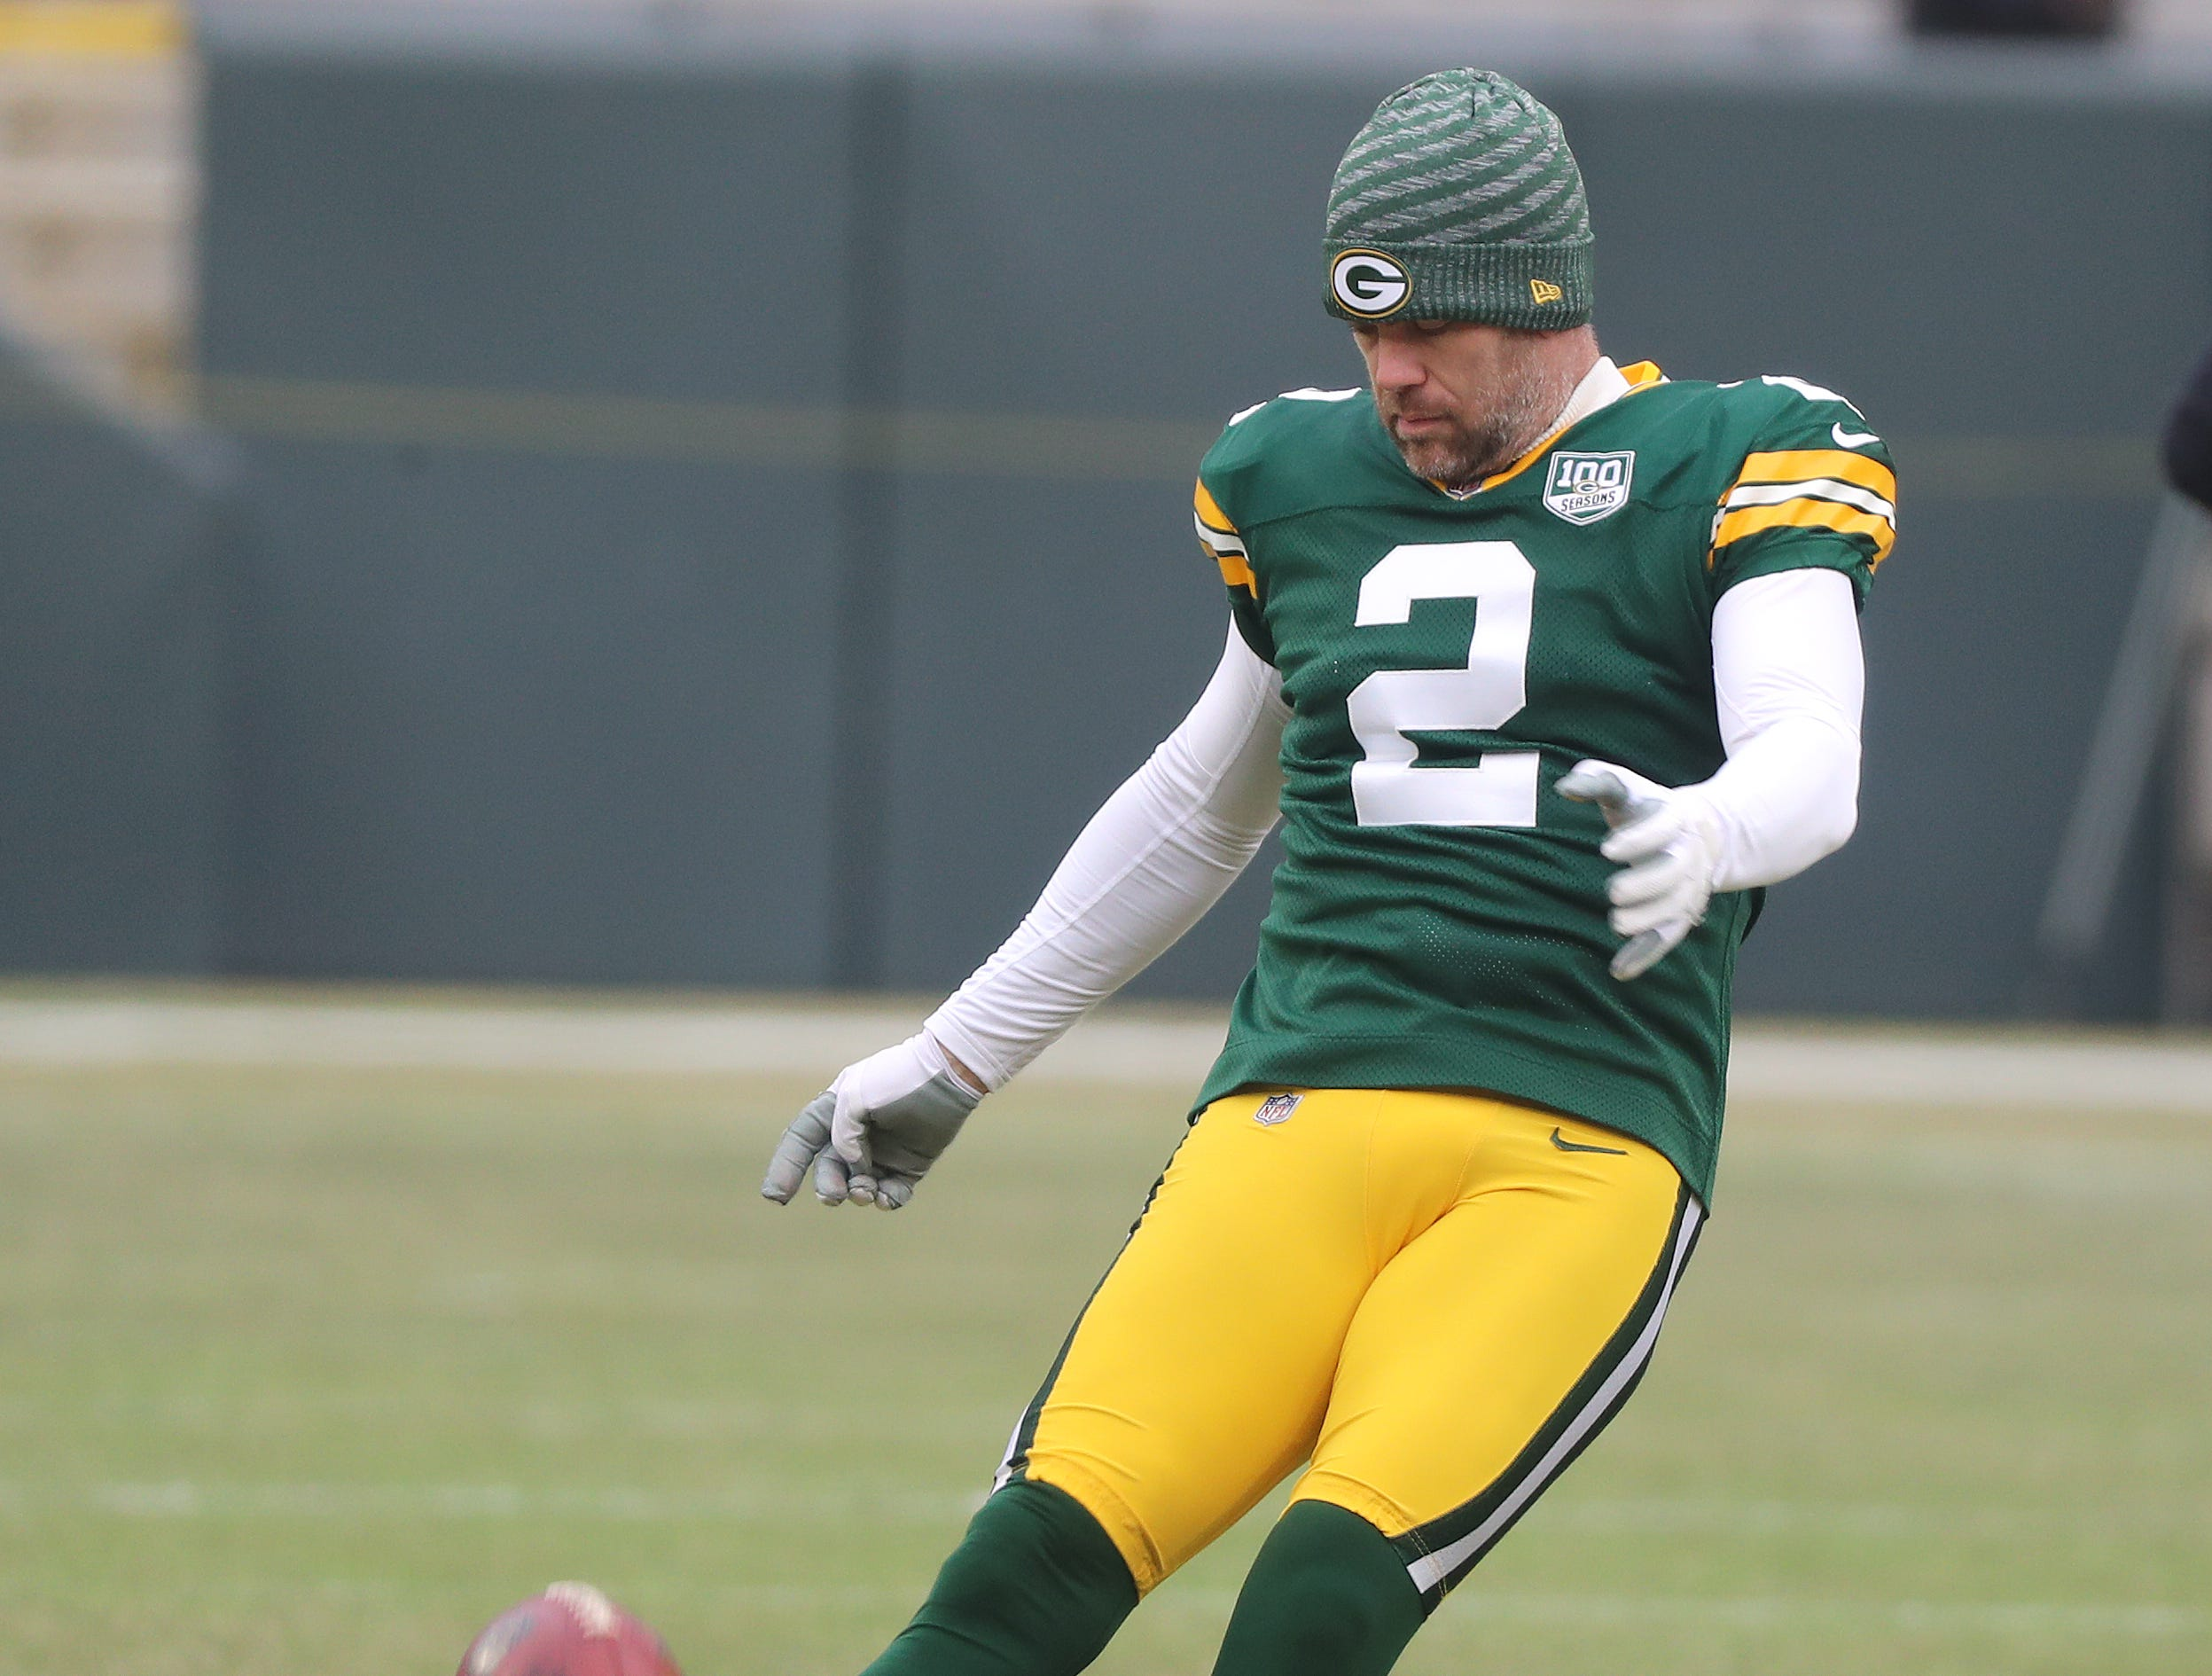 Green Bay Packers kicker Mason Crosby (2) warms up before the game against the Detroit Lions at Lambeau Field Sunday, December 30, 2018 in Green Bay, Wis.